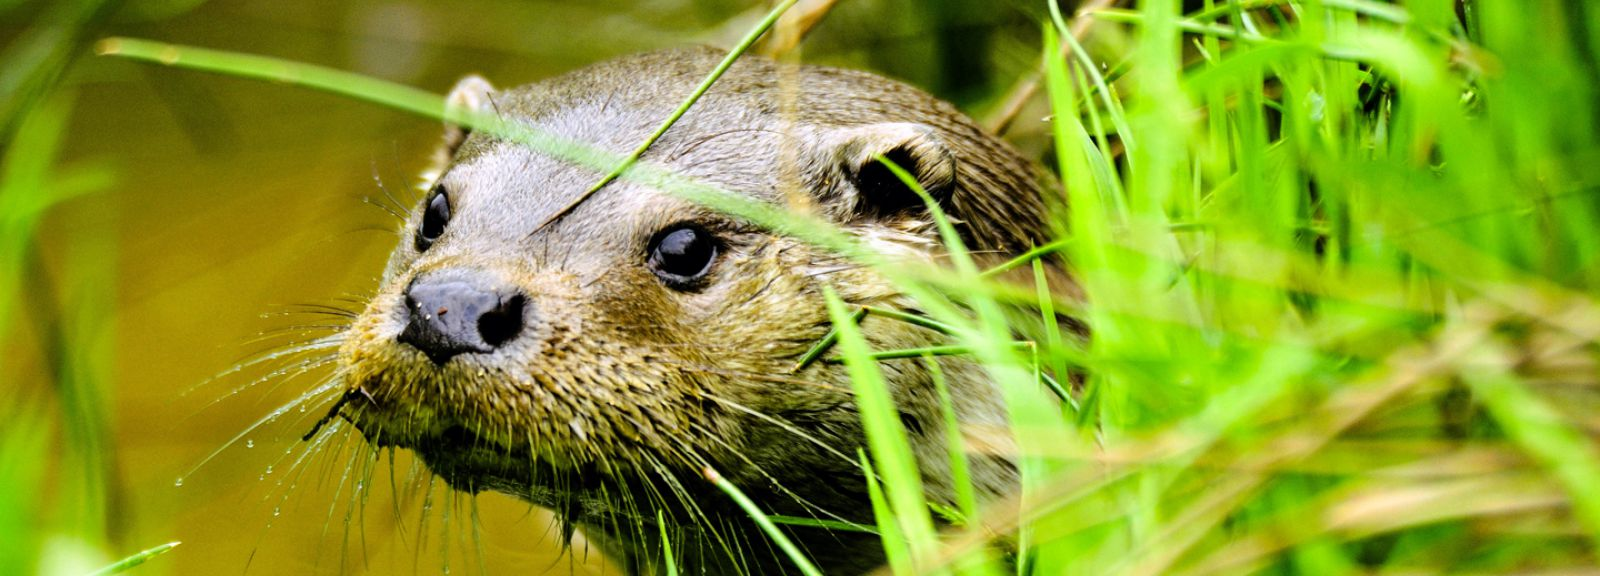 Loutre d'Europe, Angleterre © PlanetNoé - Pierre Vernay